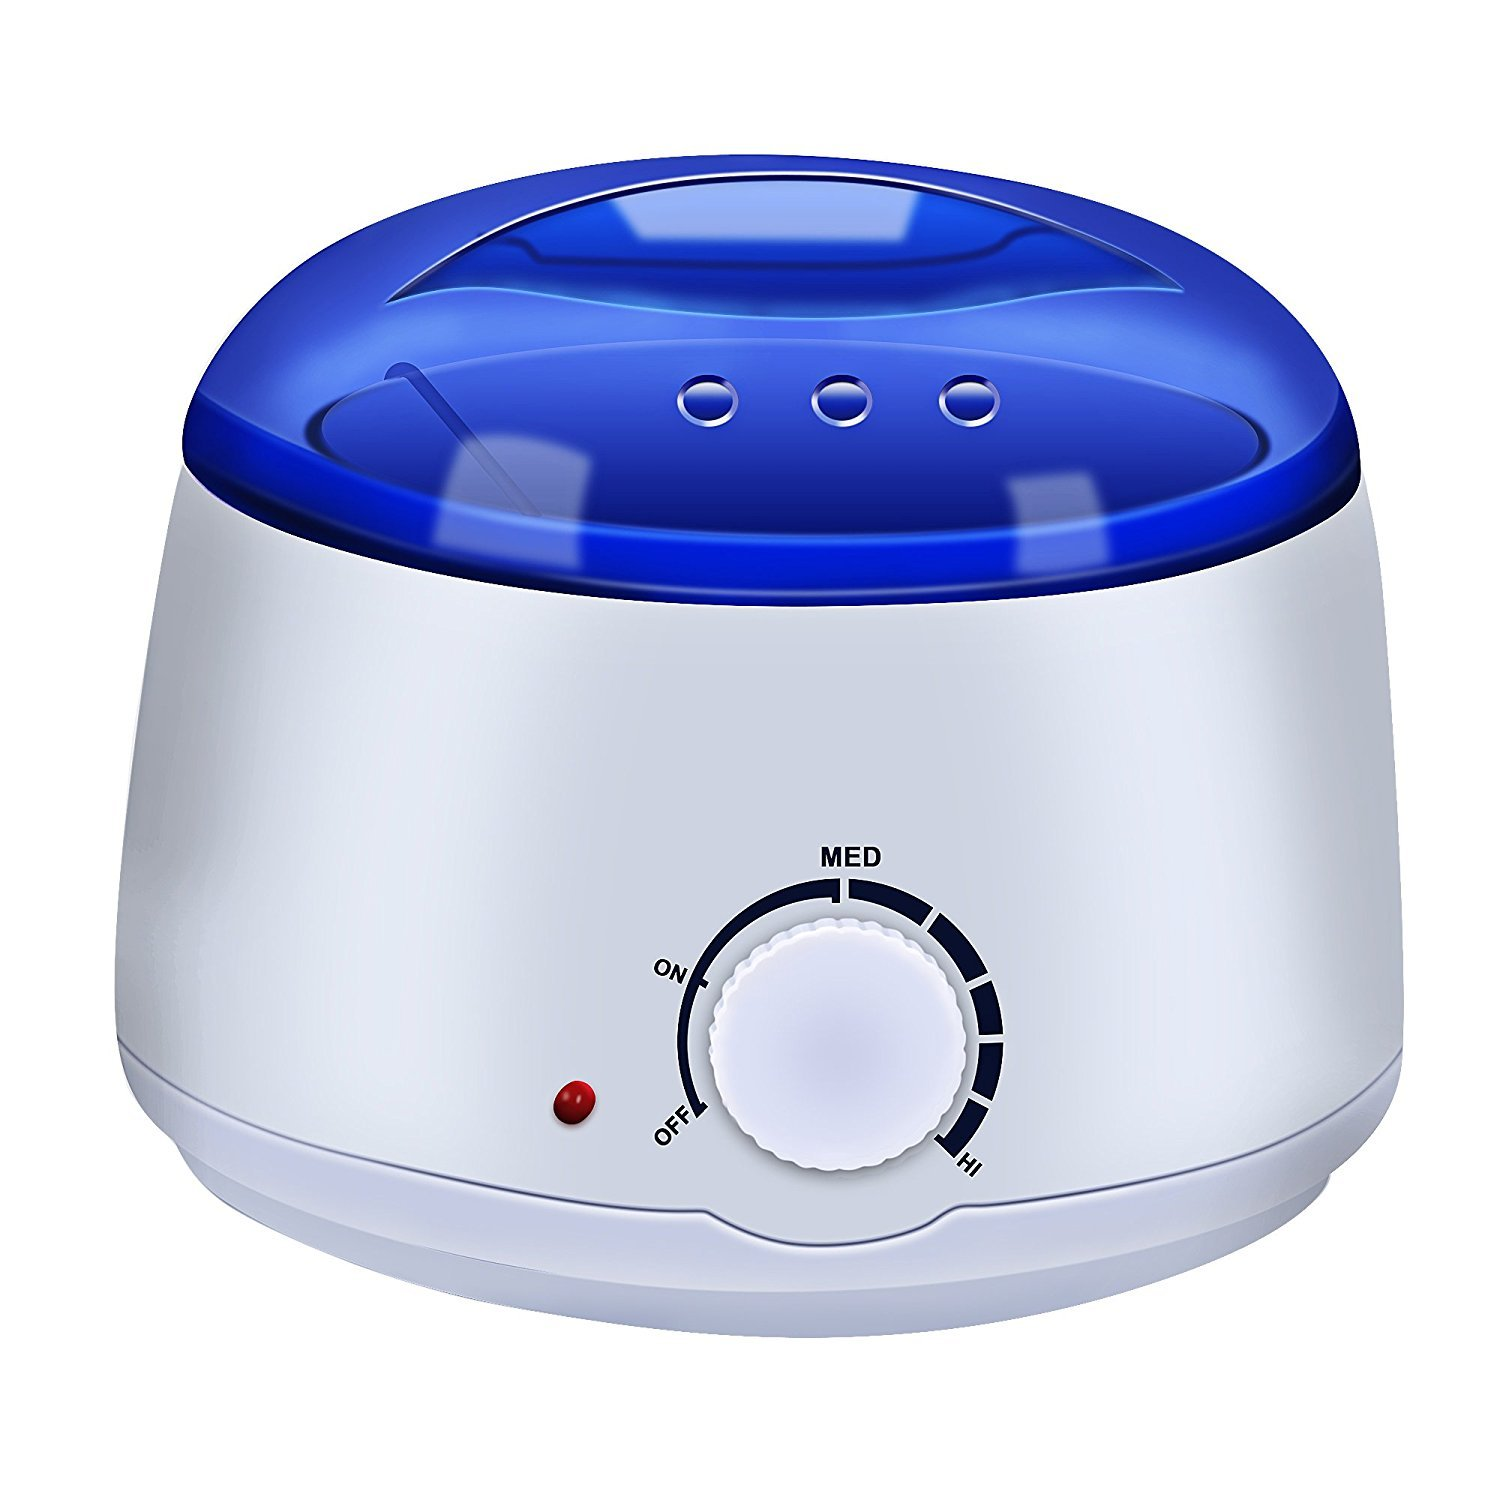 Portable Wax Warmer Electric Wax Heater for All Wax Types, Wax Melter For Depilatory Hair Removal Warmer with Adjustable Temperature and Built-in Thermo Safety Control, Removable 500ml (White) MM-C02pots